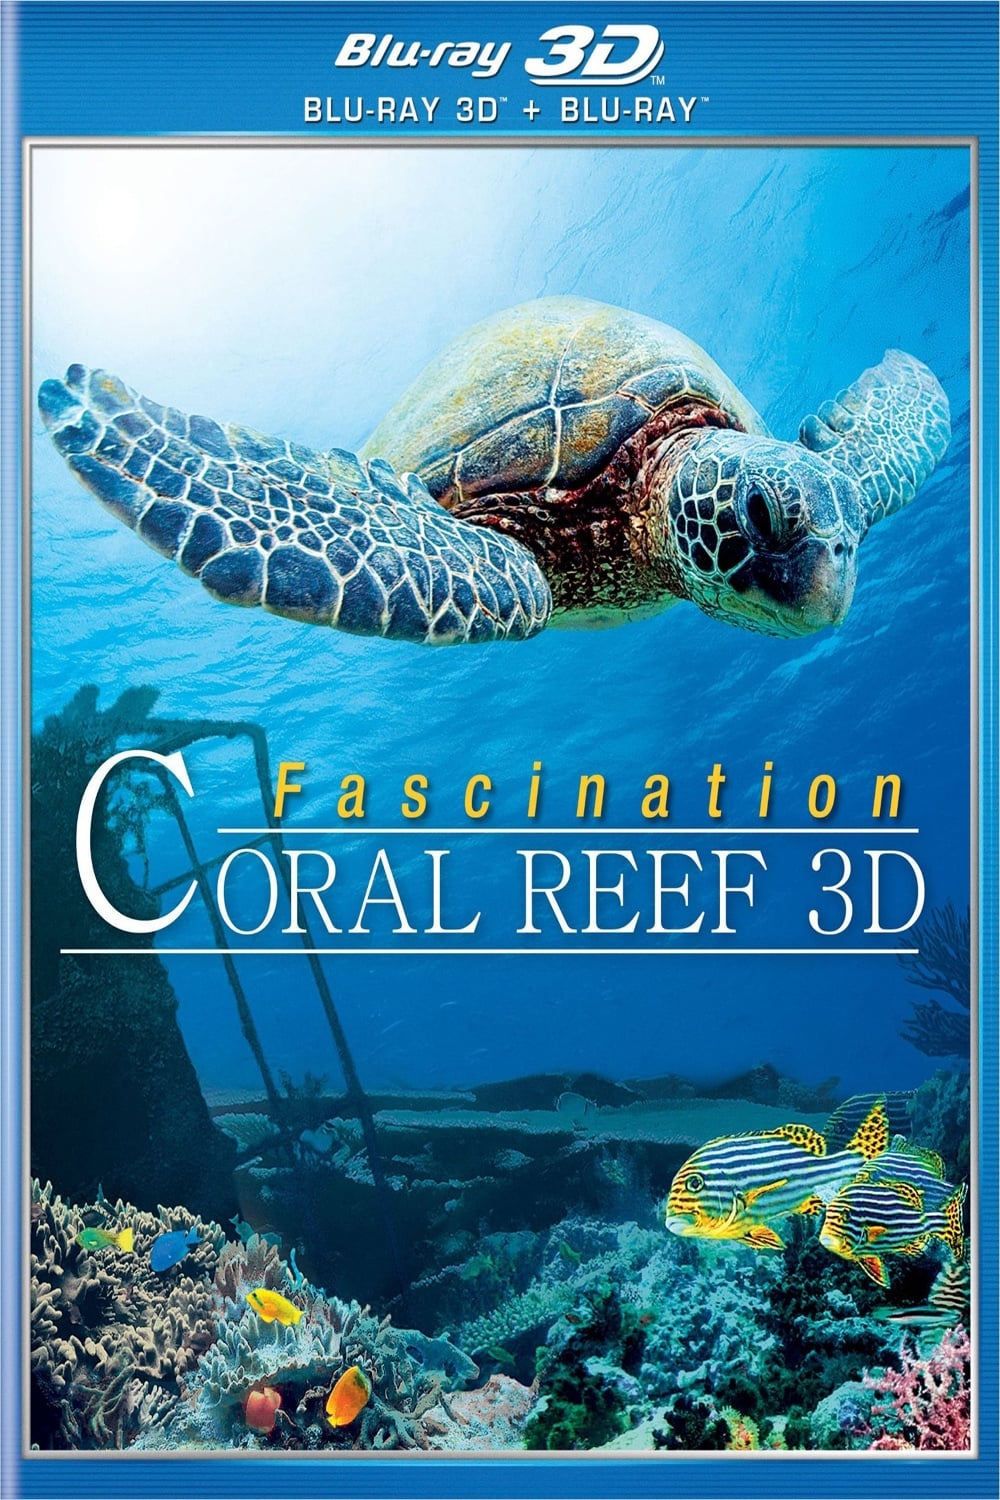 Fascination Coral Reef: Mysterious Worlds Underwater (2012)